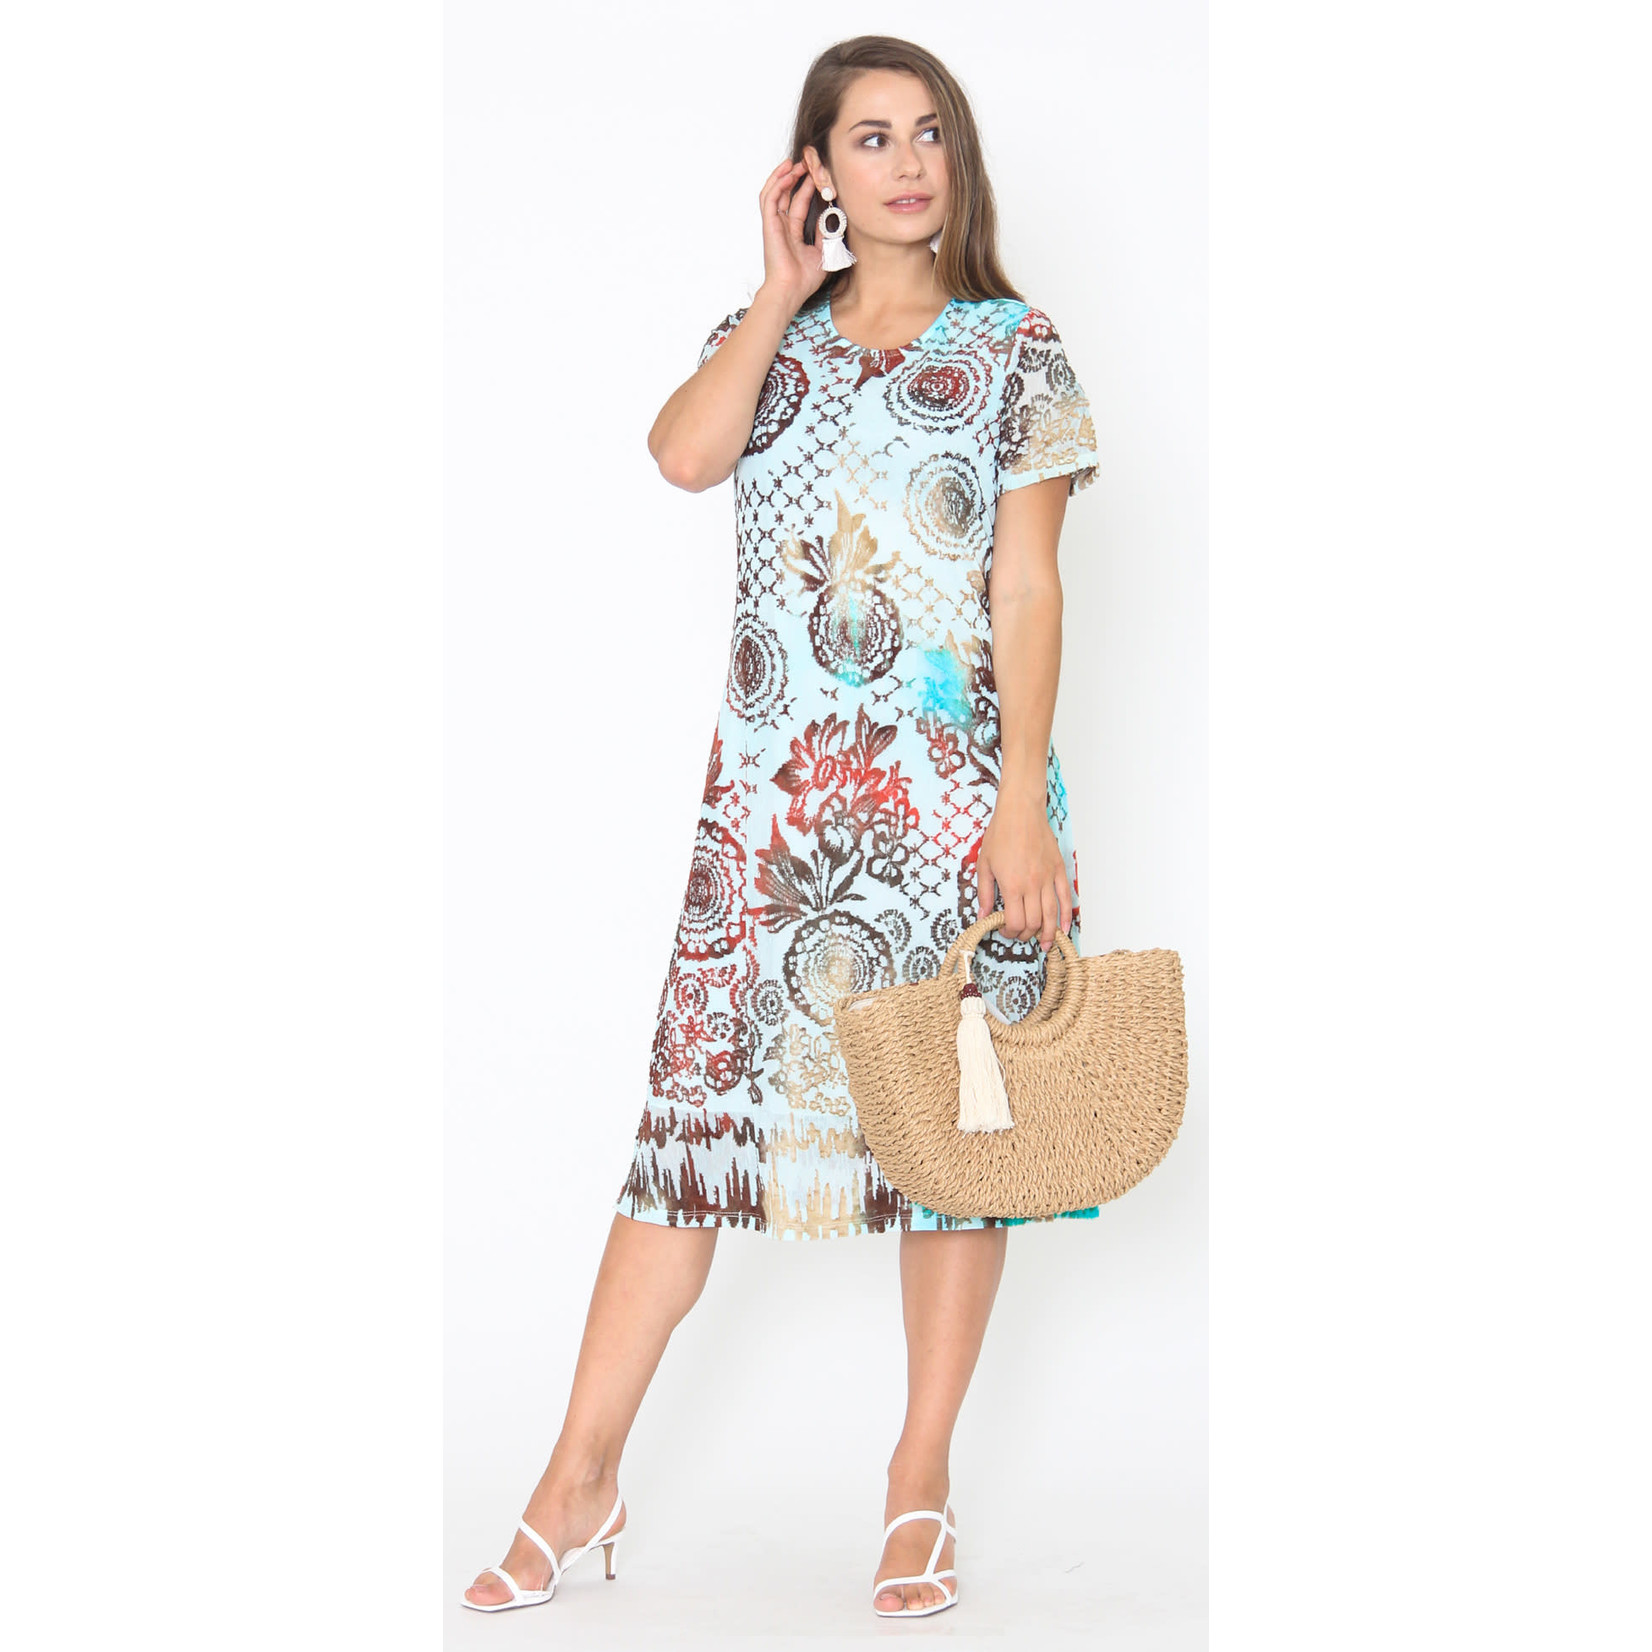 Captiva Turquoise Printed Dress With Sleeves